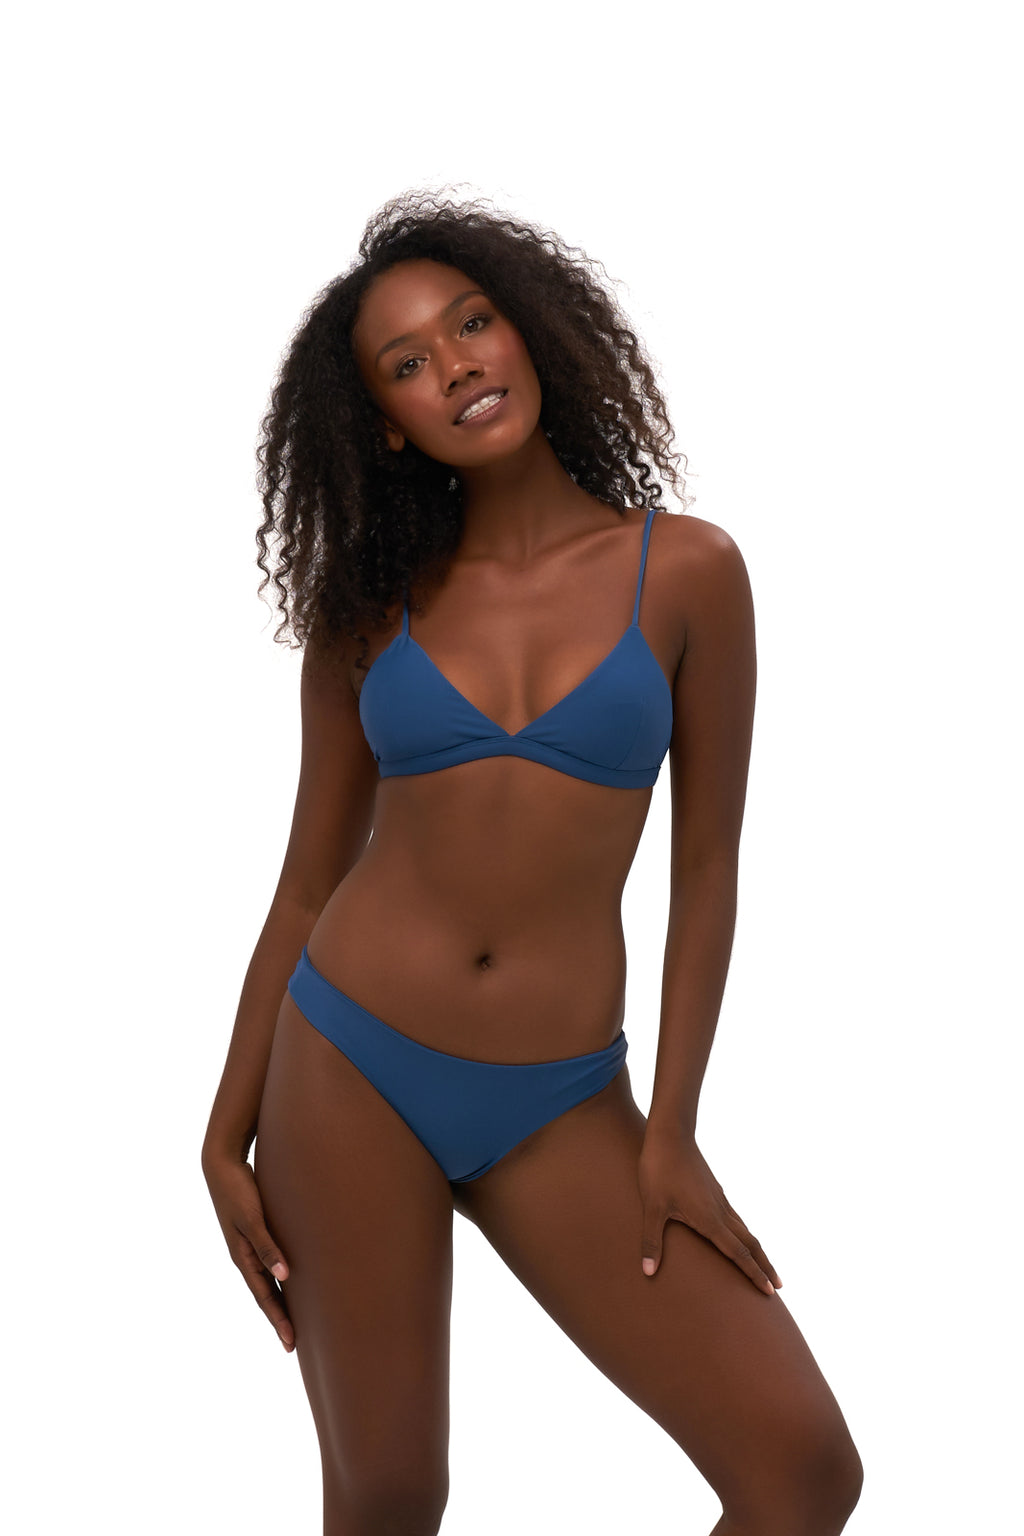 Storm Swimwear - Mallorca - Triangle Bikini Top with removable padding in Ocean Blue